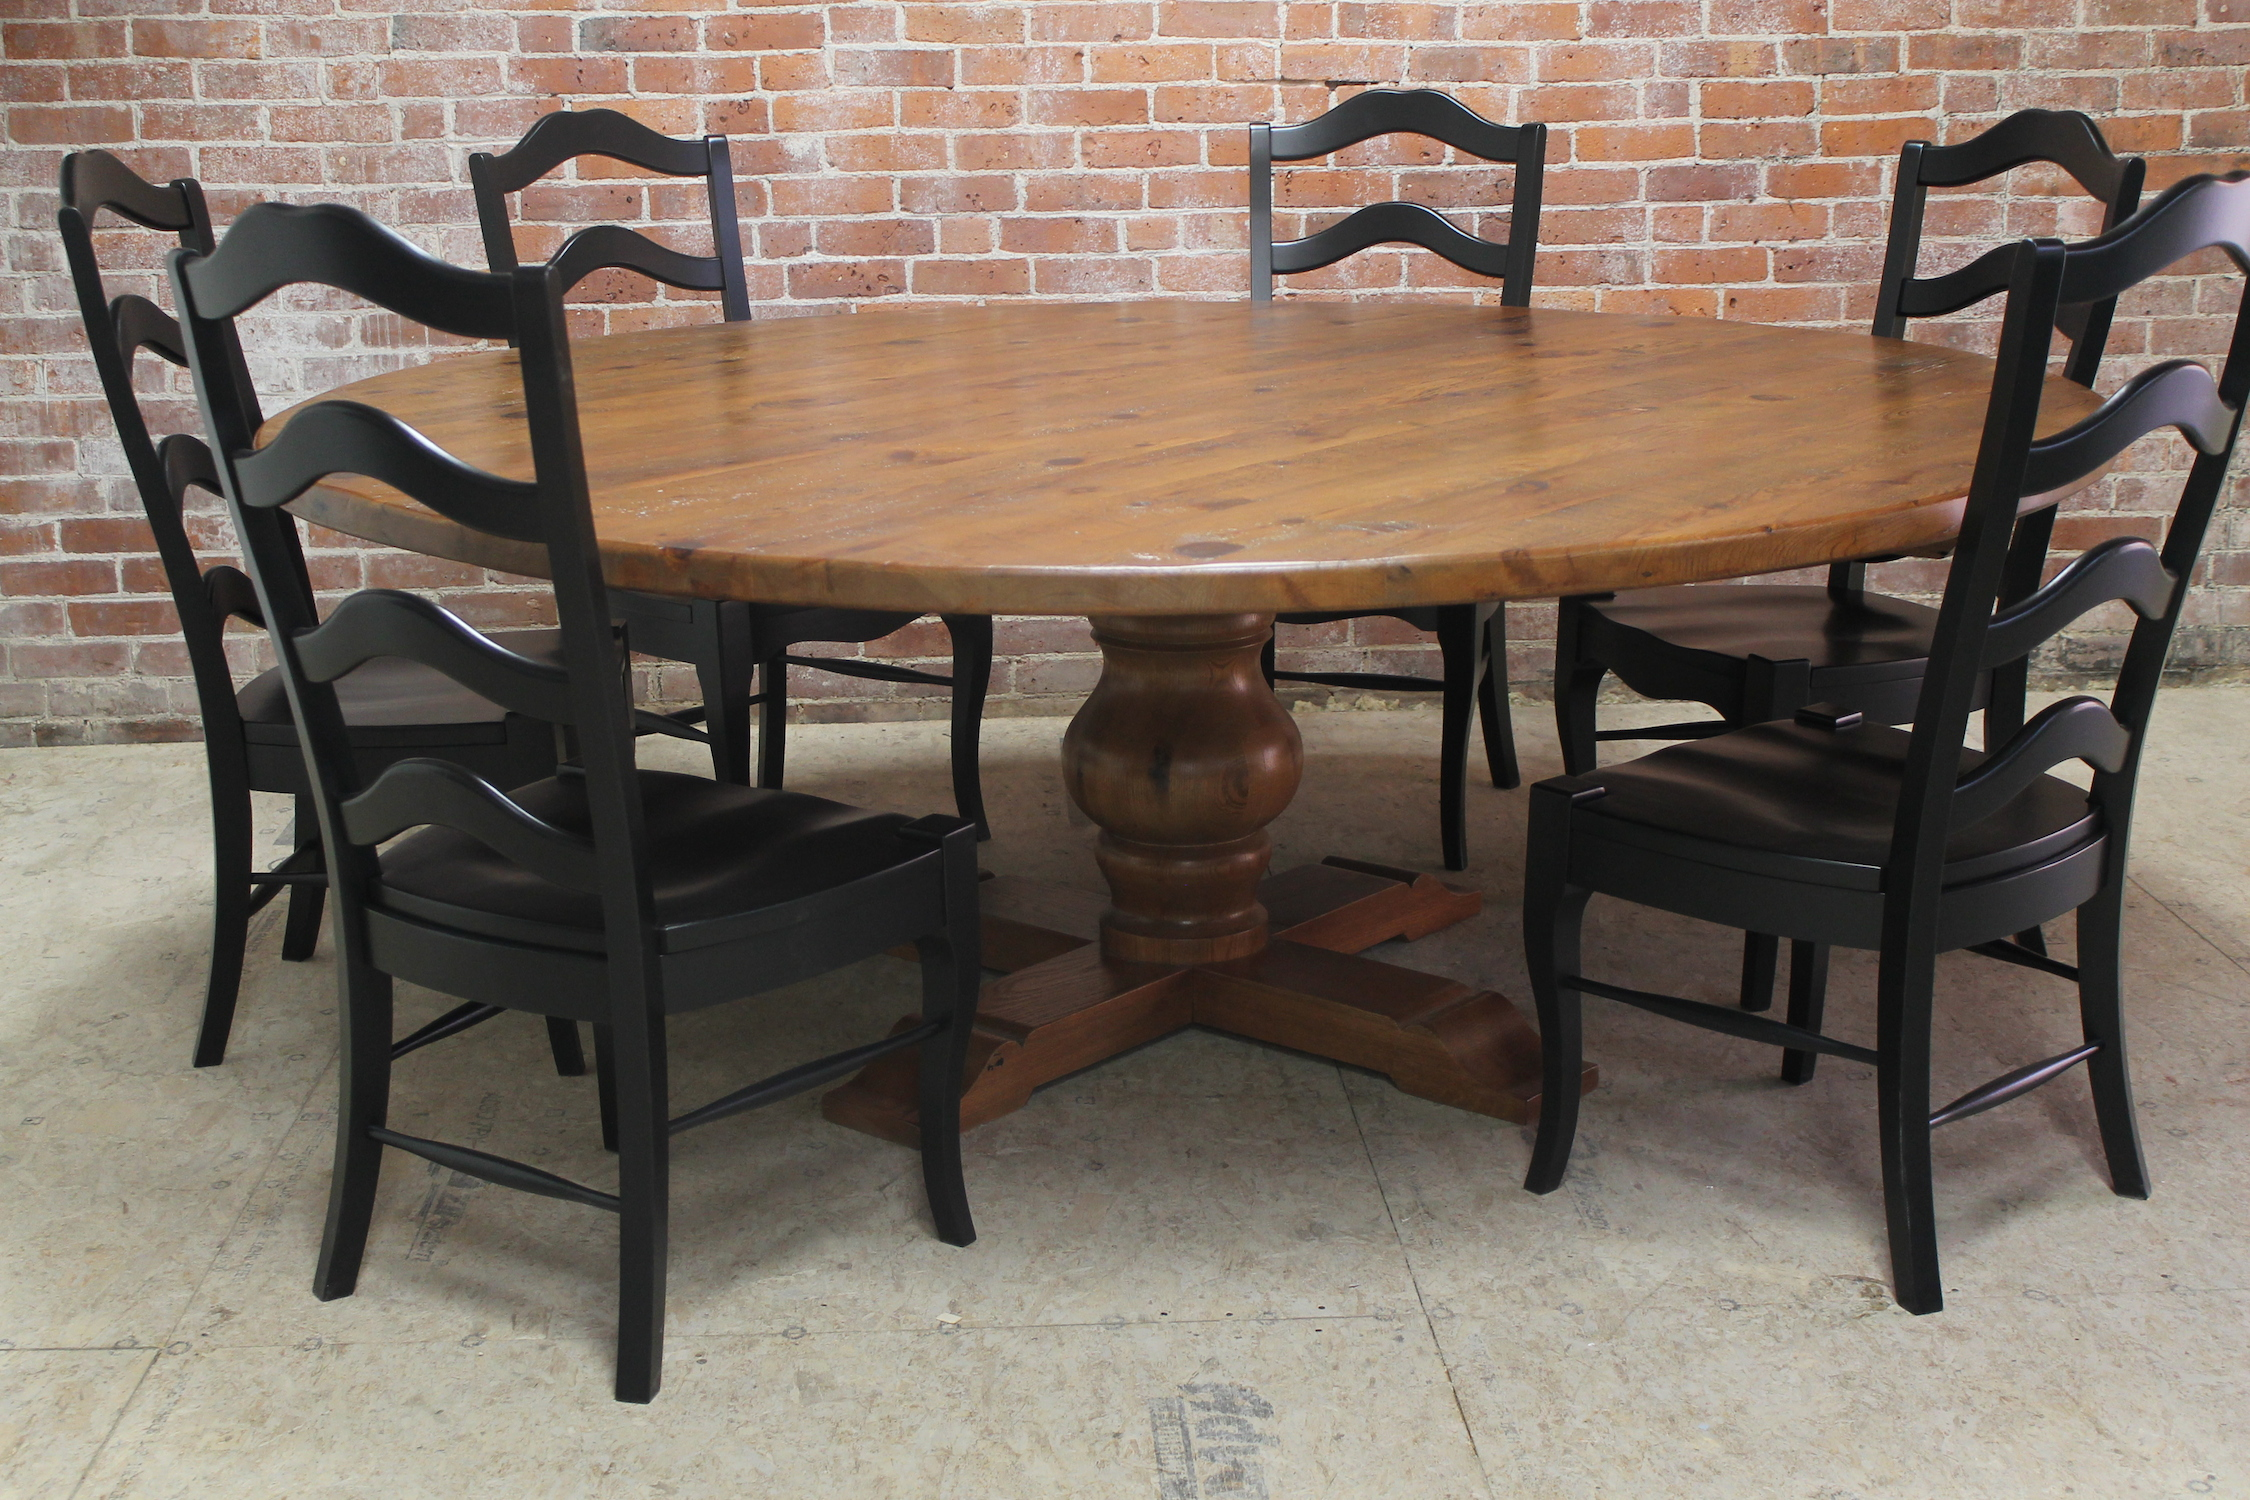 Getting a round dining room table for 6 by your own for Round dining room table sets